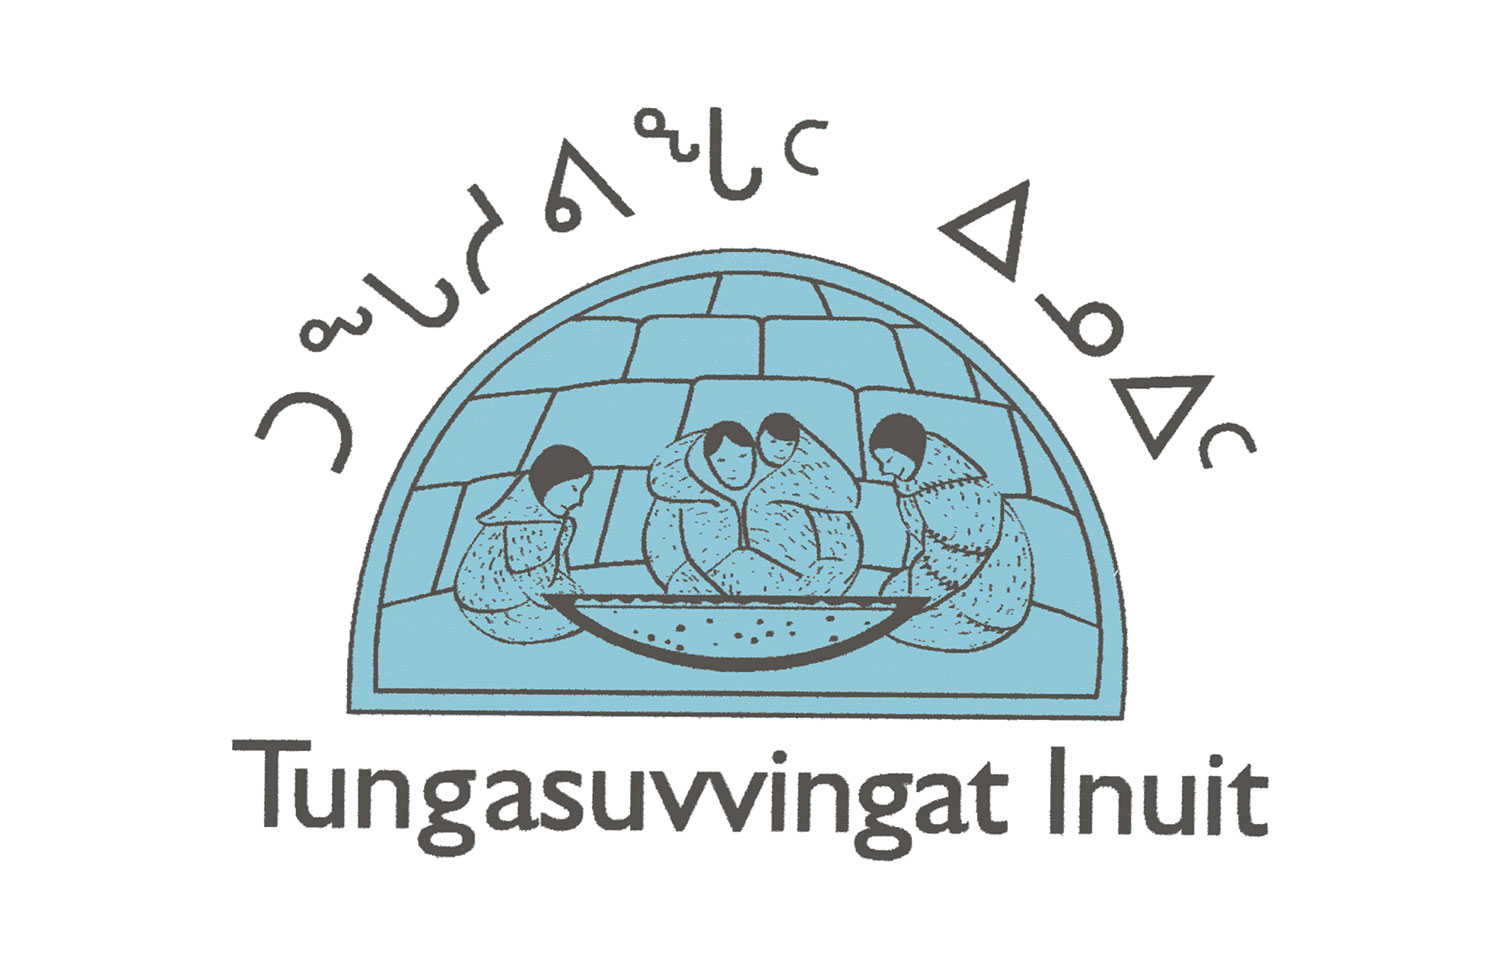 UNDERSERVED INUIT IN ONTARIO CONTINUE TO BE MARGINALIZED